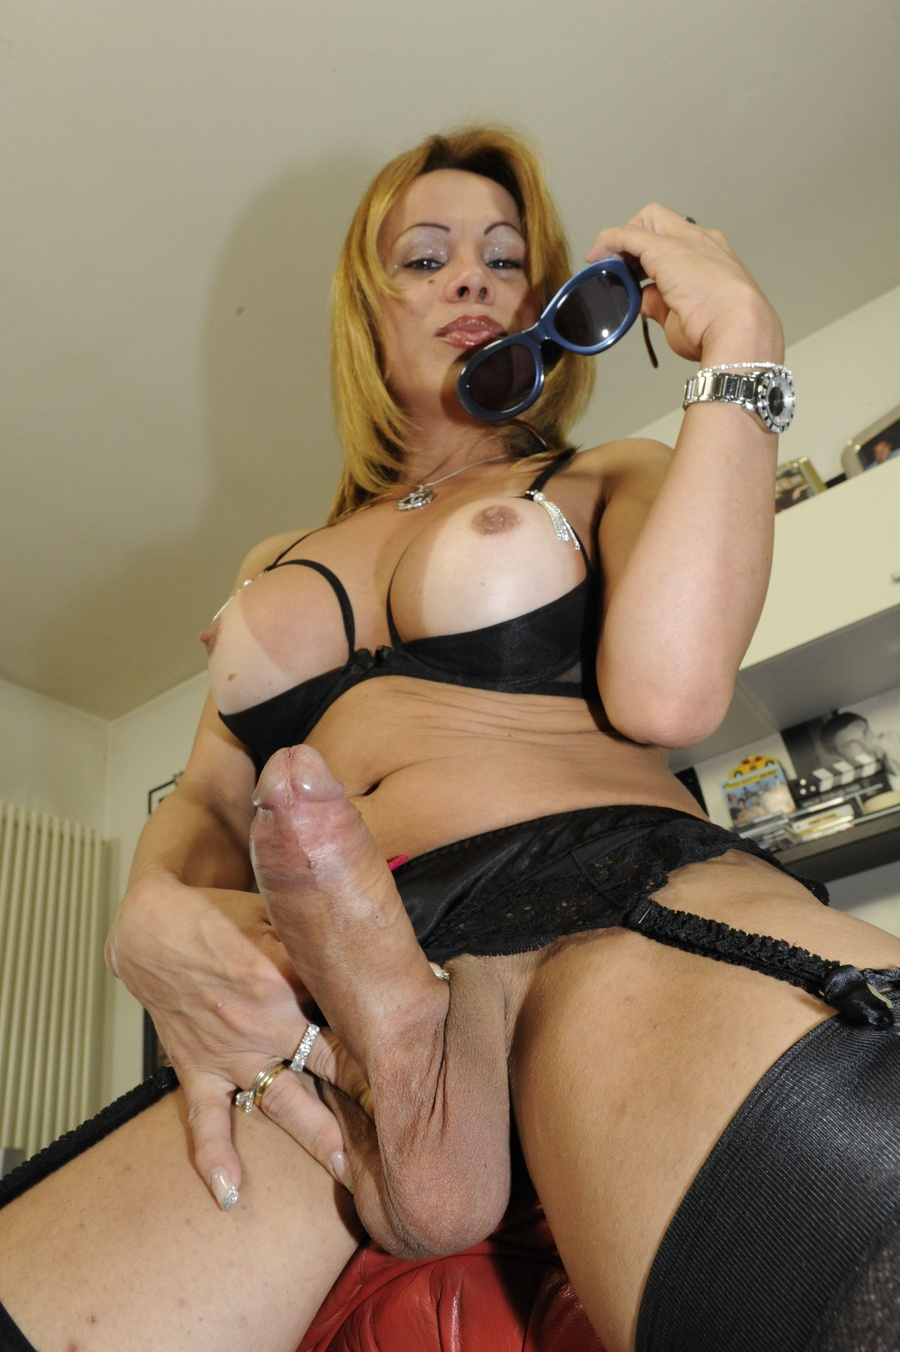 Galery schemale fuck girl picture sex clips